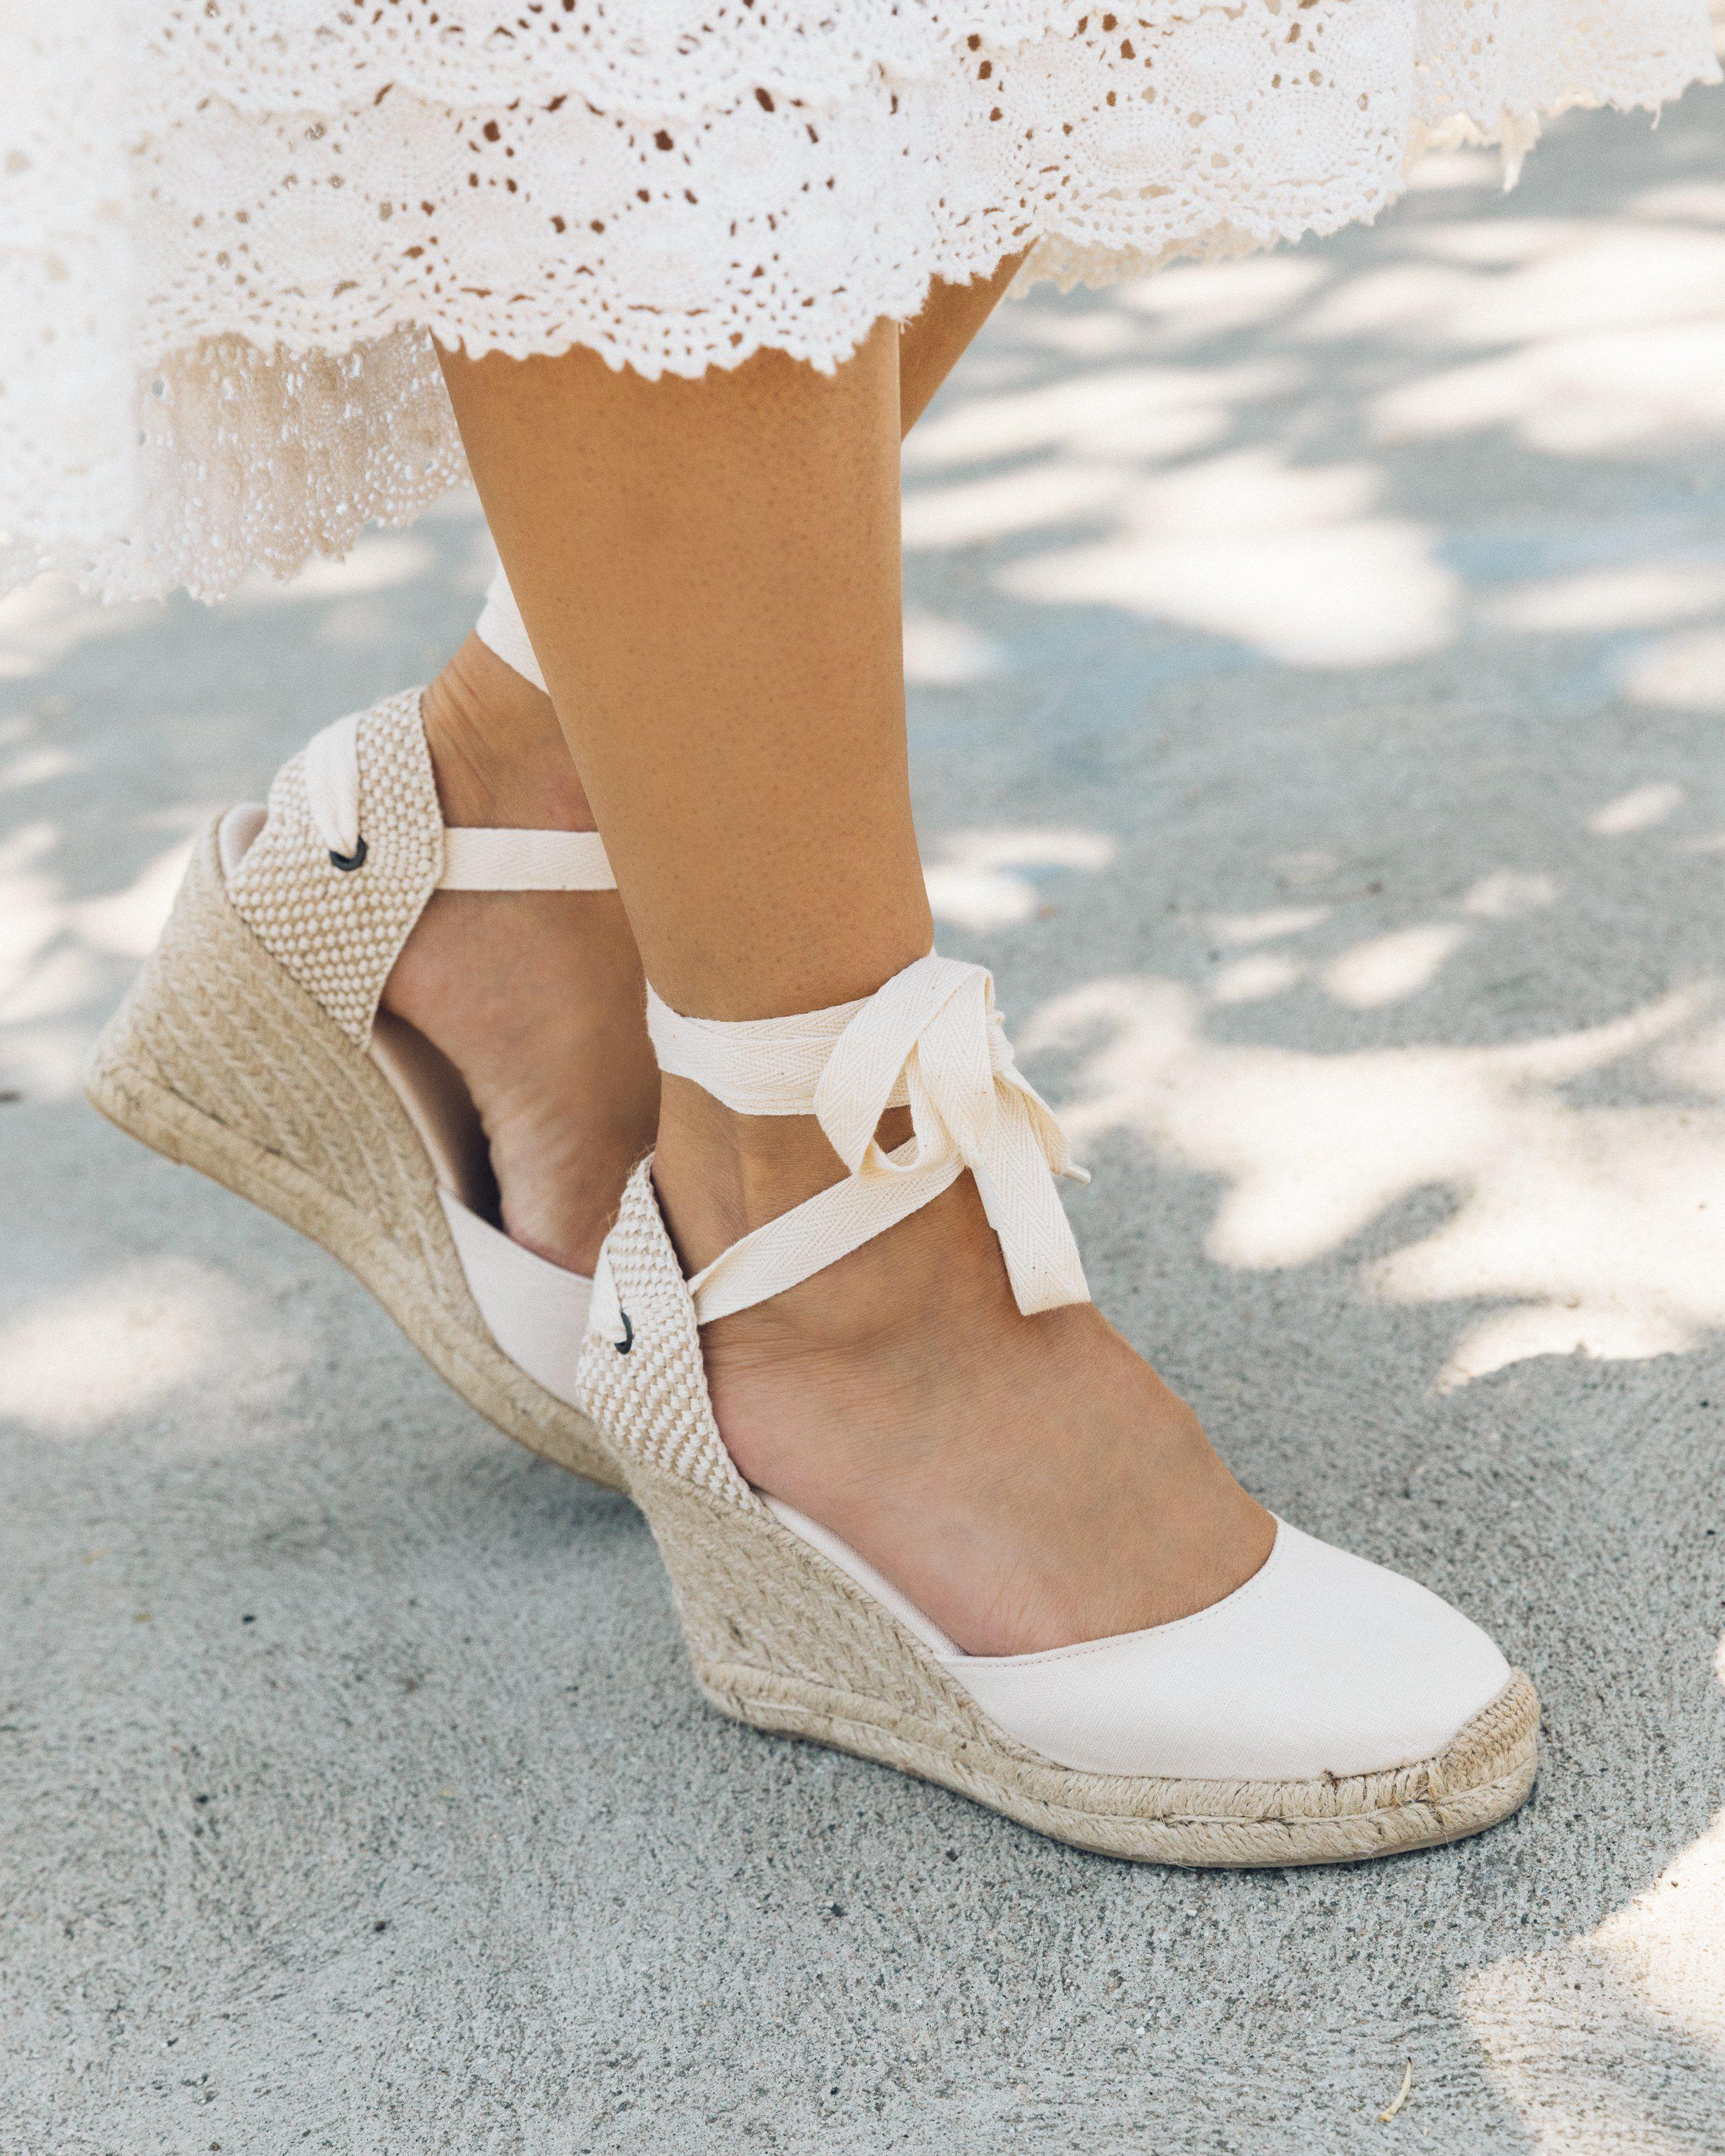 357f2742cf9 Soludos. Women s Tall Wedge